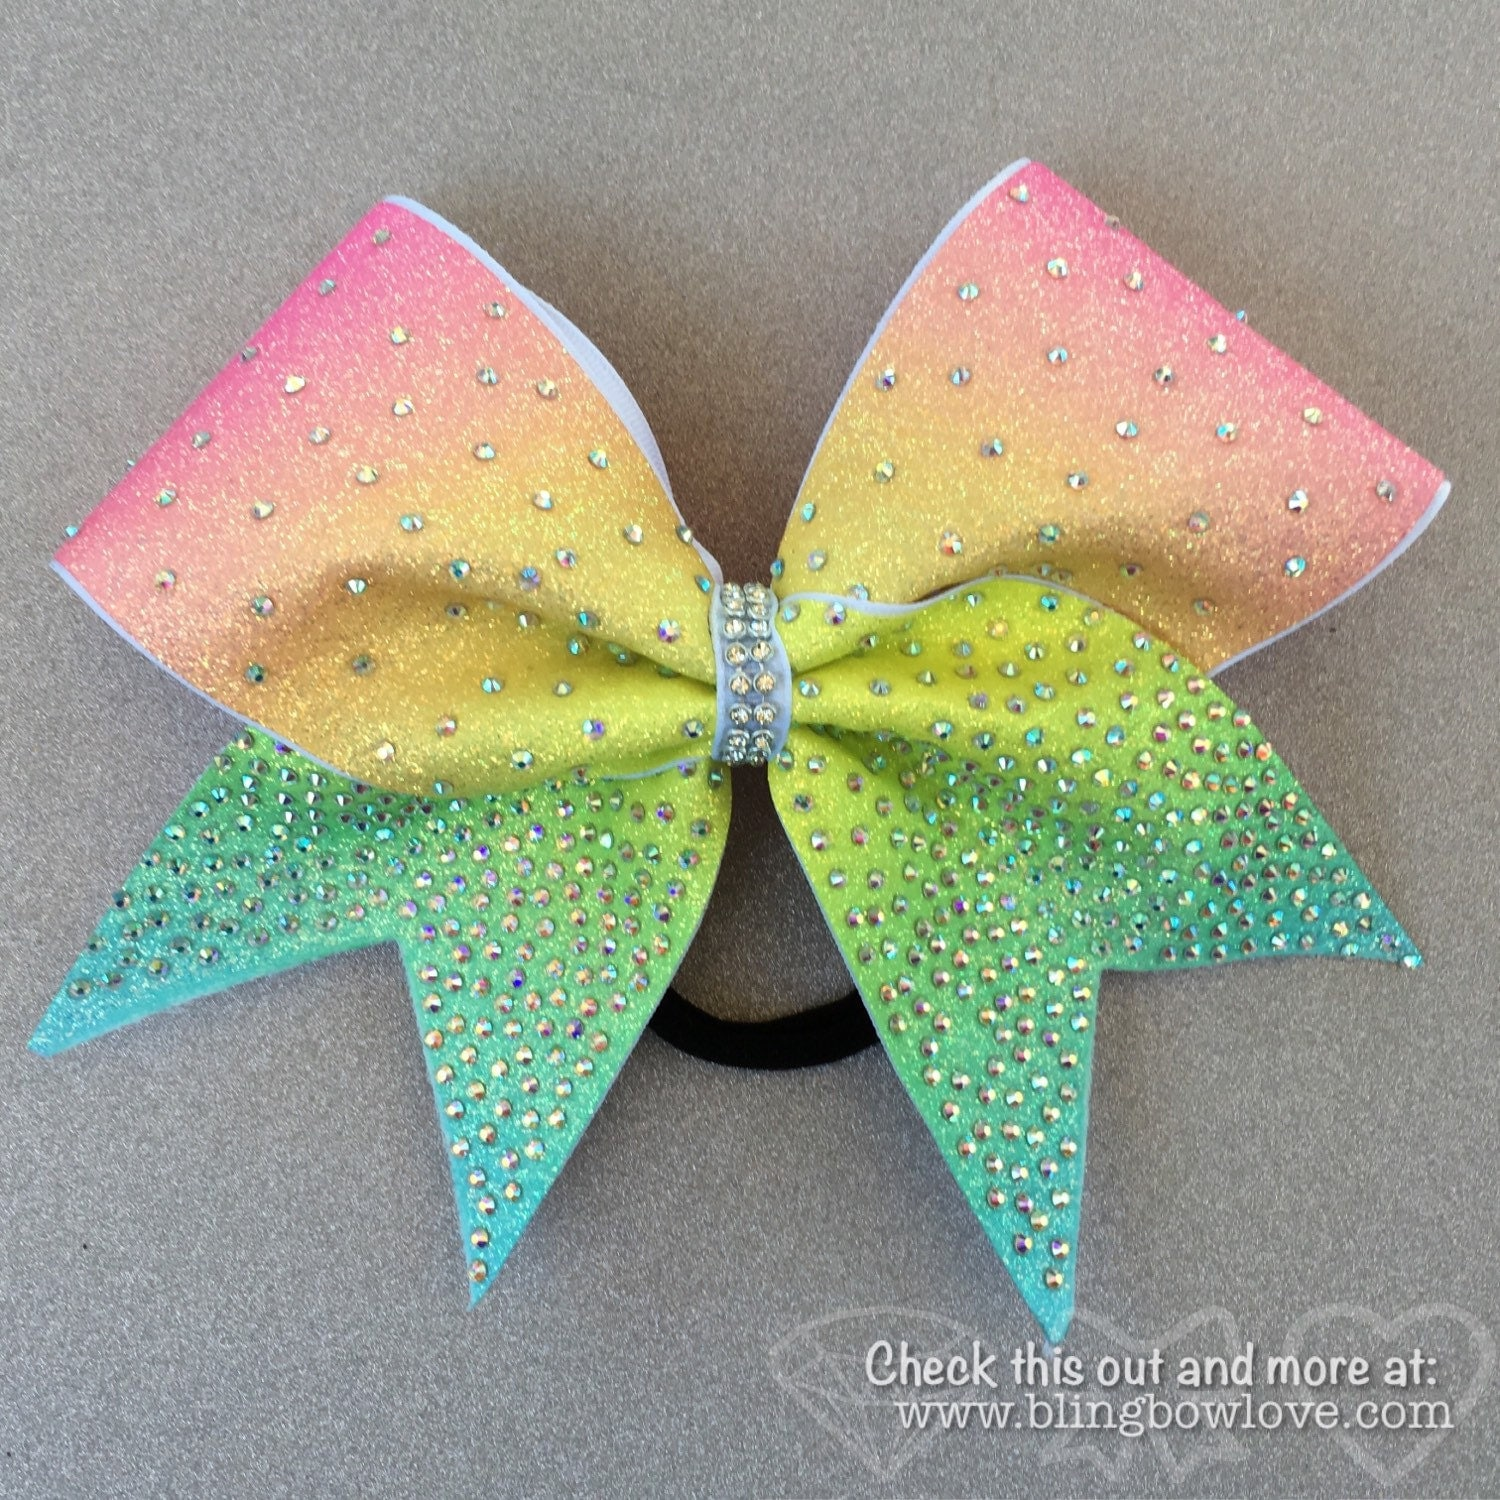 Spring Bling Rainbow Cheer Bow Ombre Cheer Bow